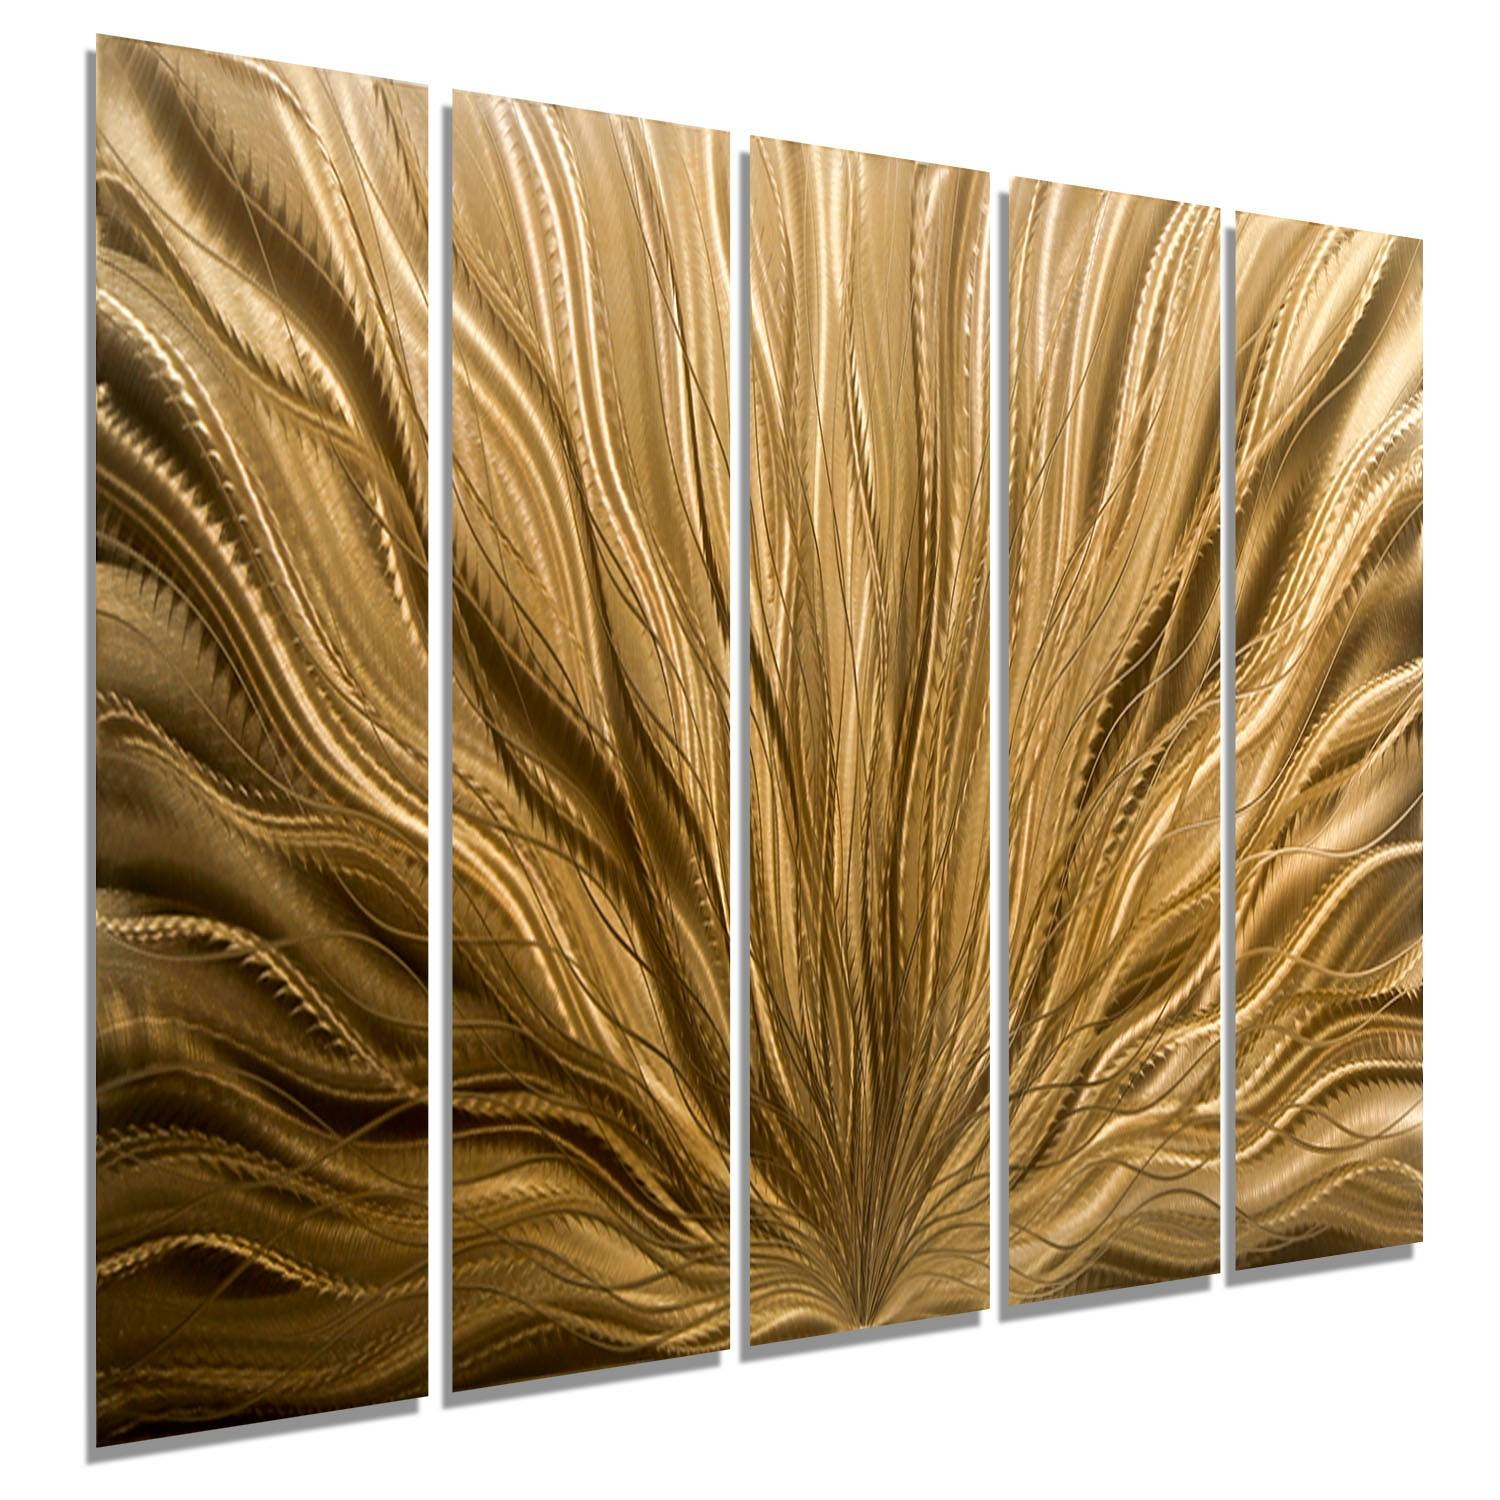 Copper Plumage Epic – Extra Large Light Copper Abstract Metal Wall With Regard To Current Large Copper Wall Art (View 12 of 30)